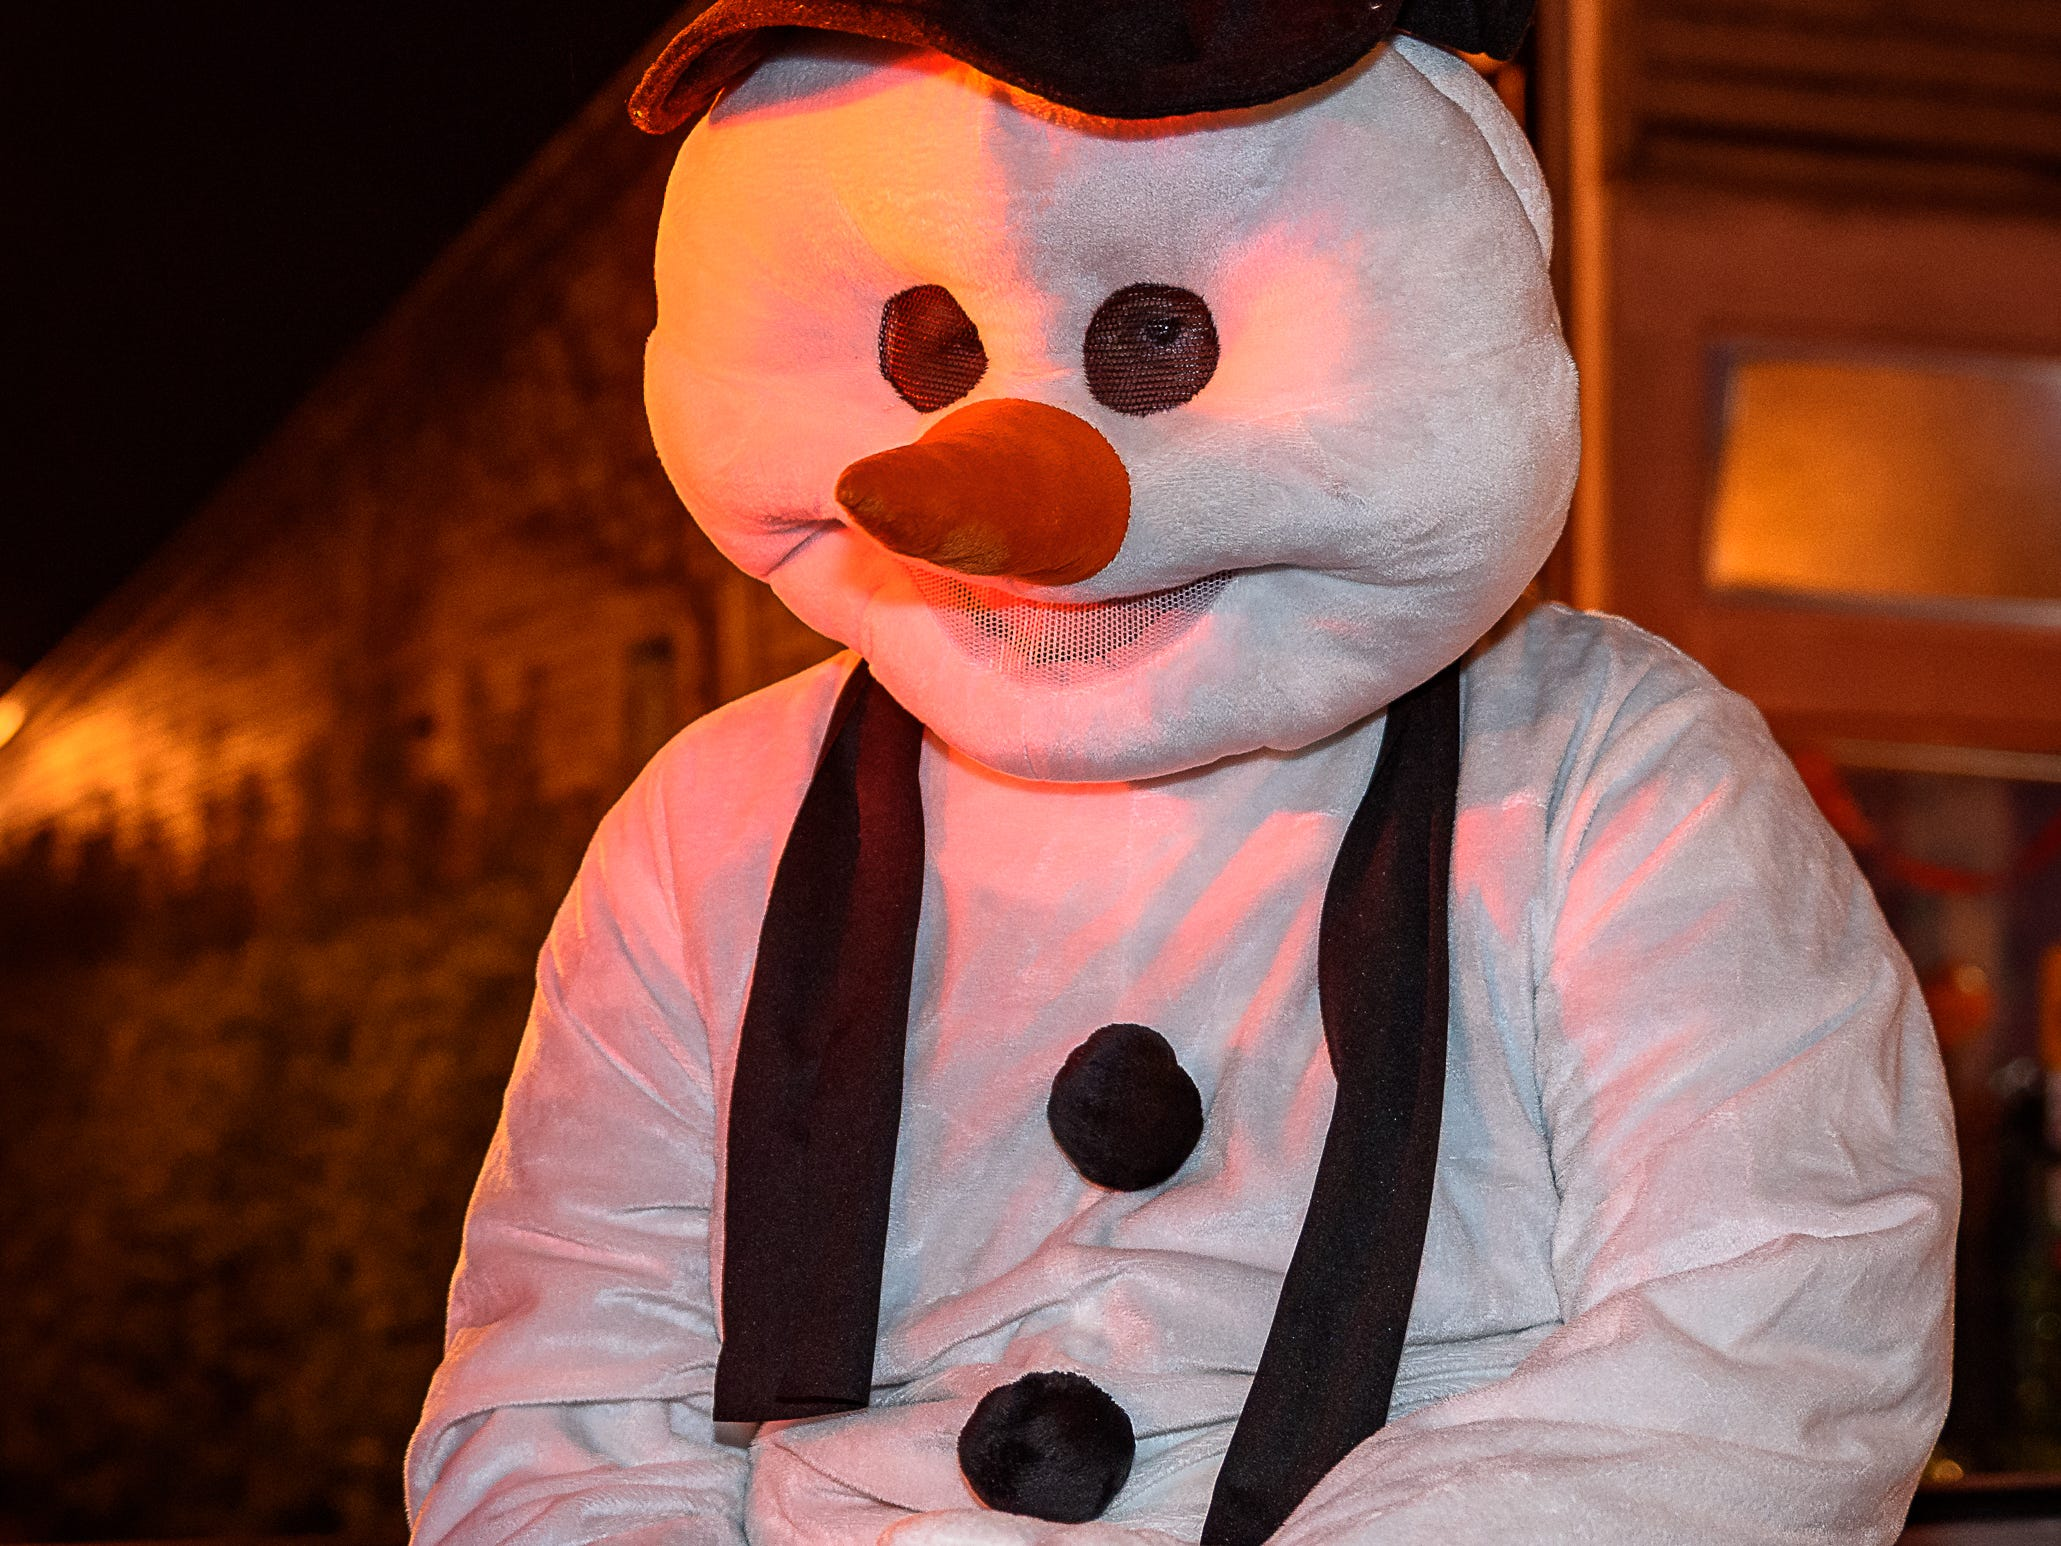 Bloxom Volunteer Fire Department brought its own snowman to the Chincoteague Christmas parade.